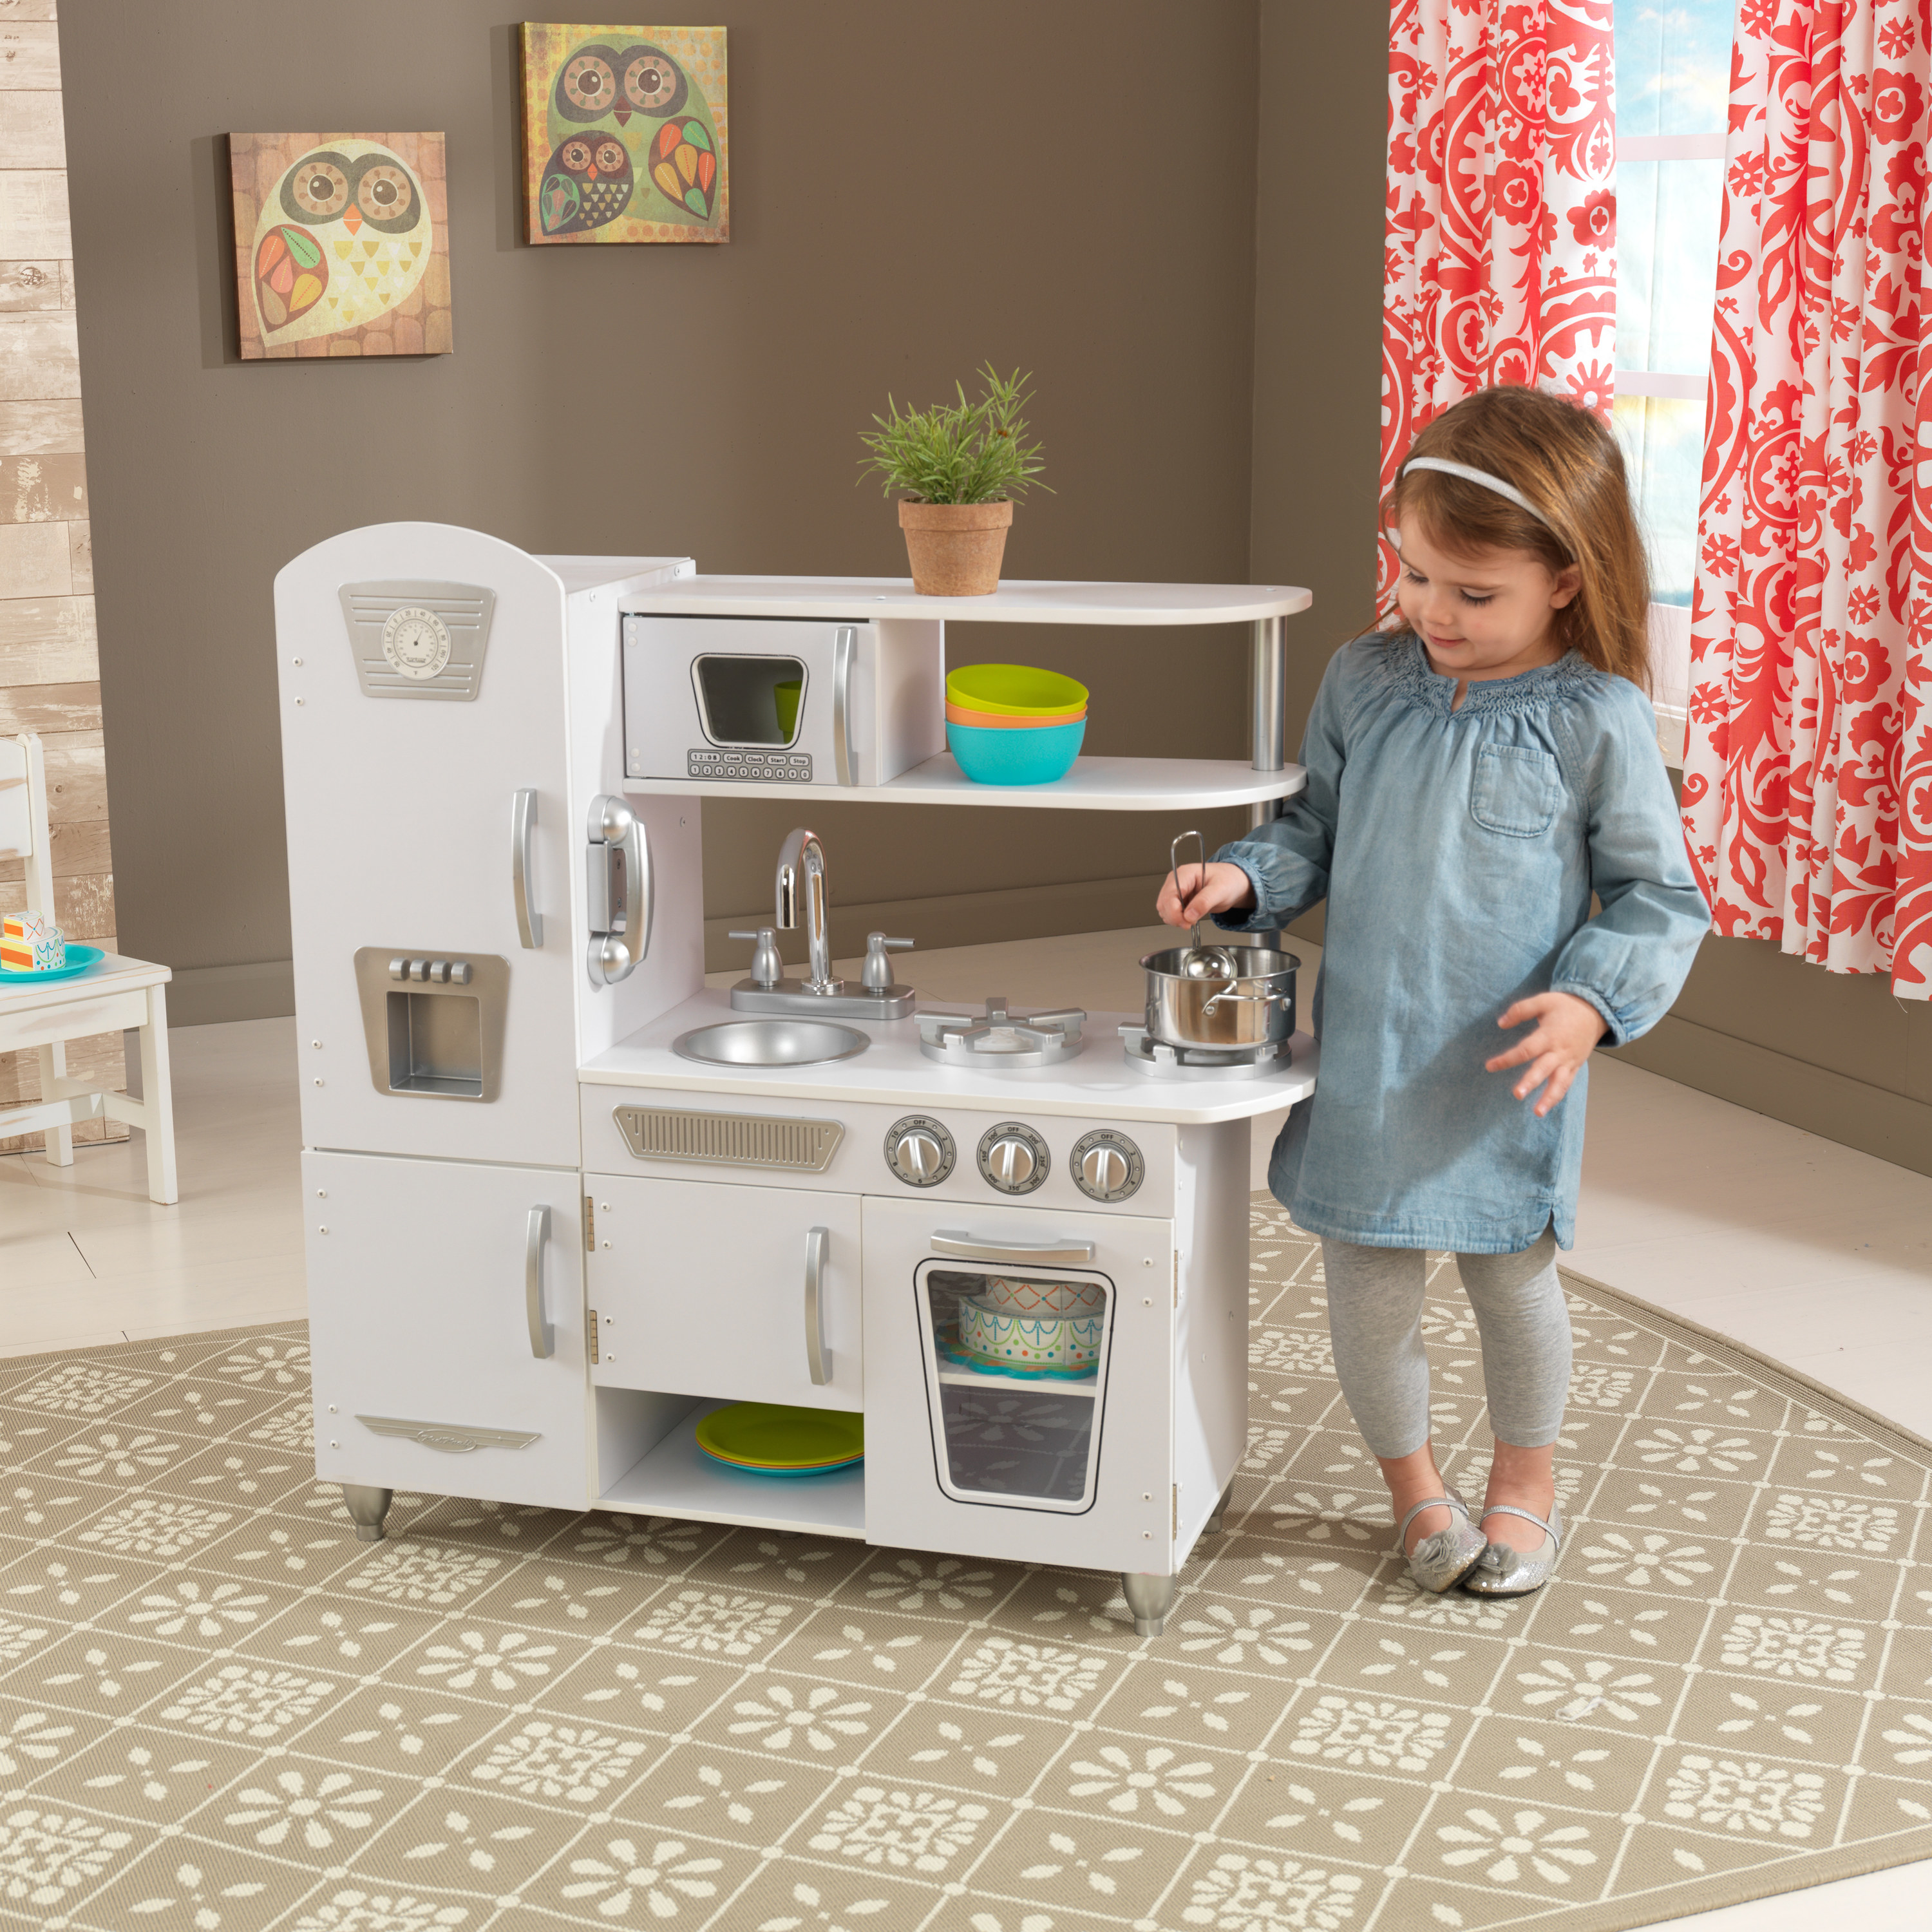 child plays with the pretend pots and pans in a play kitchen